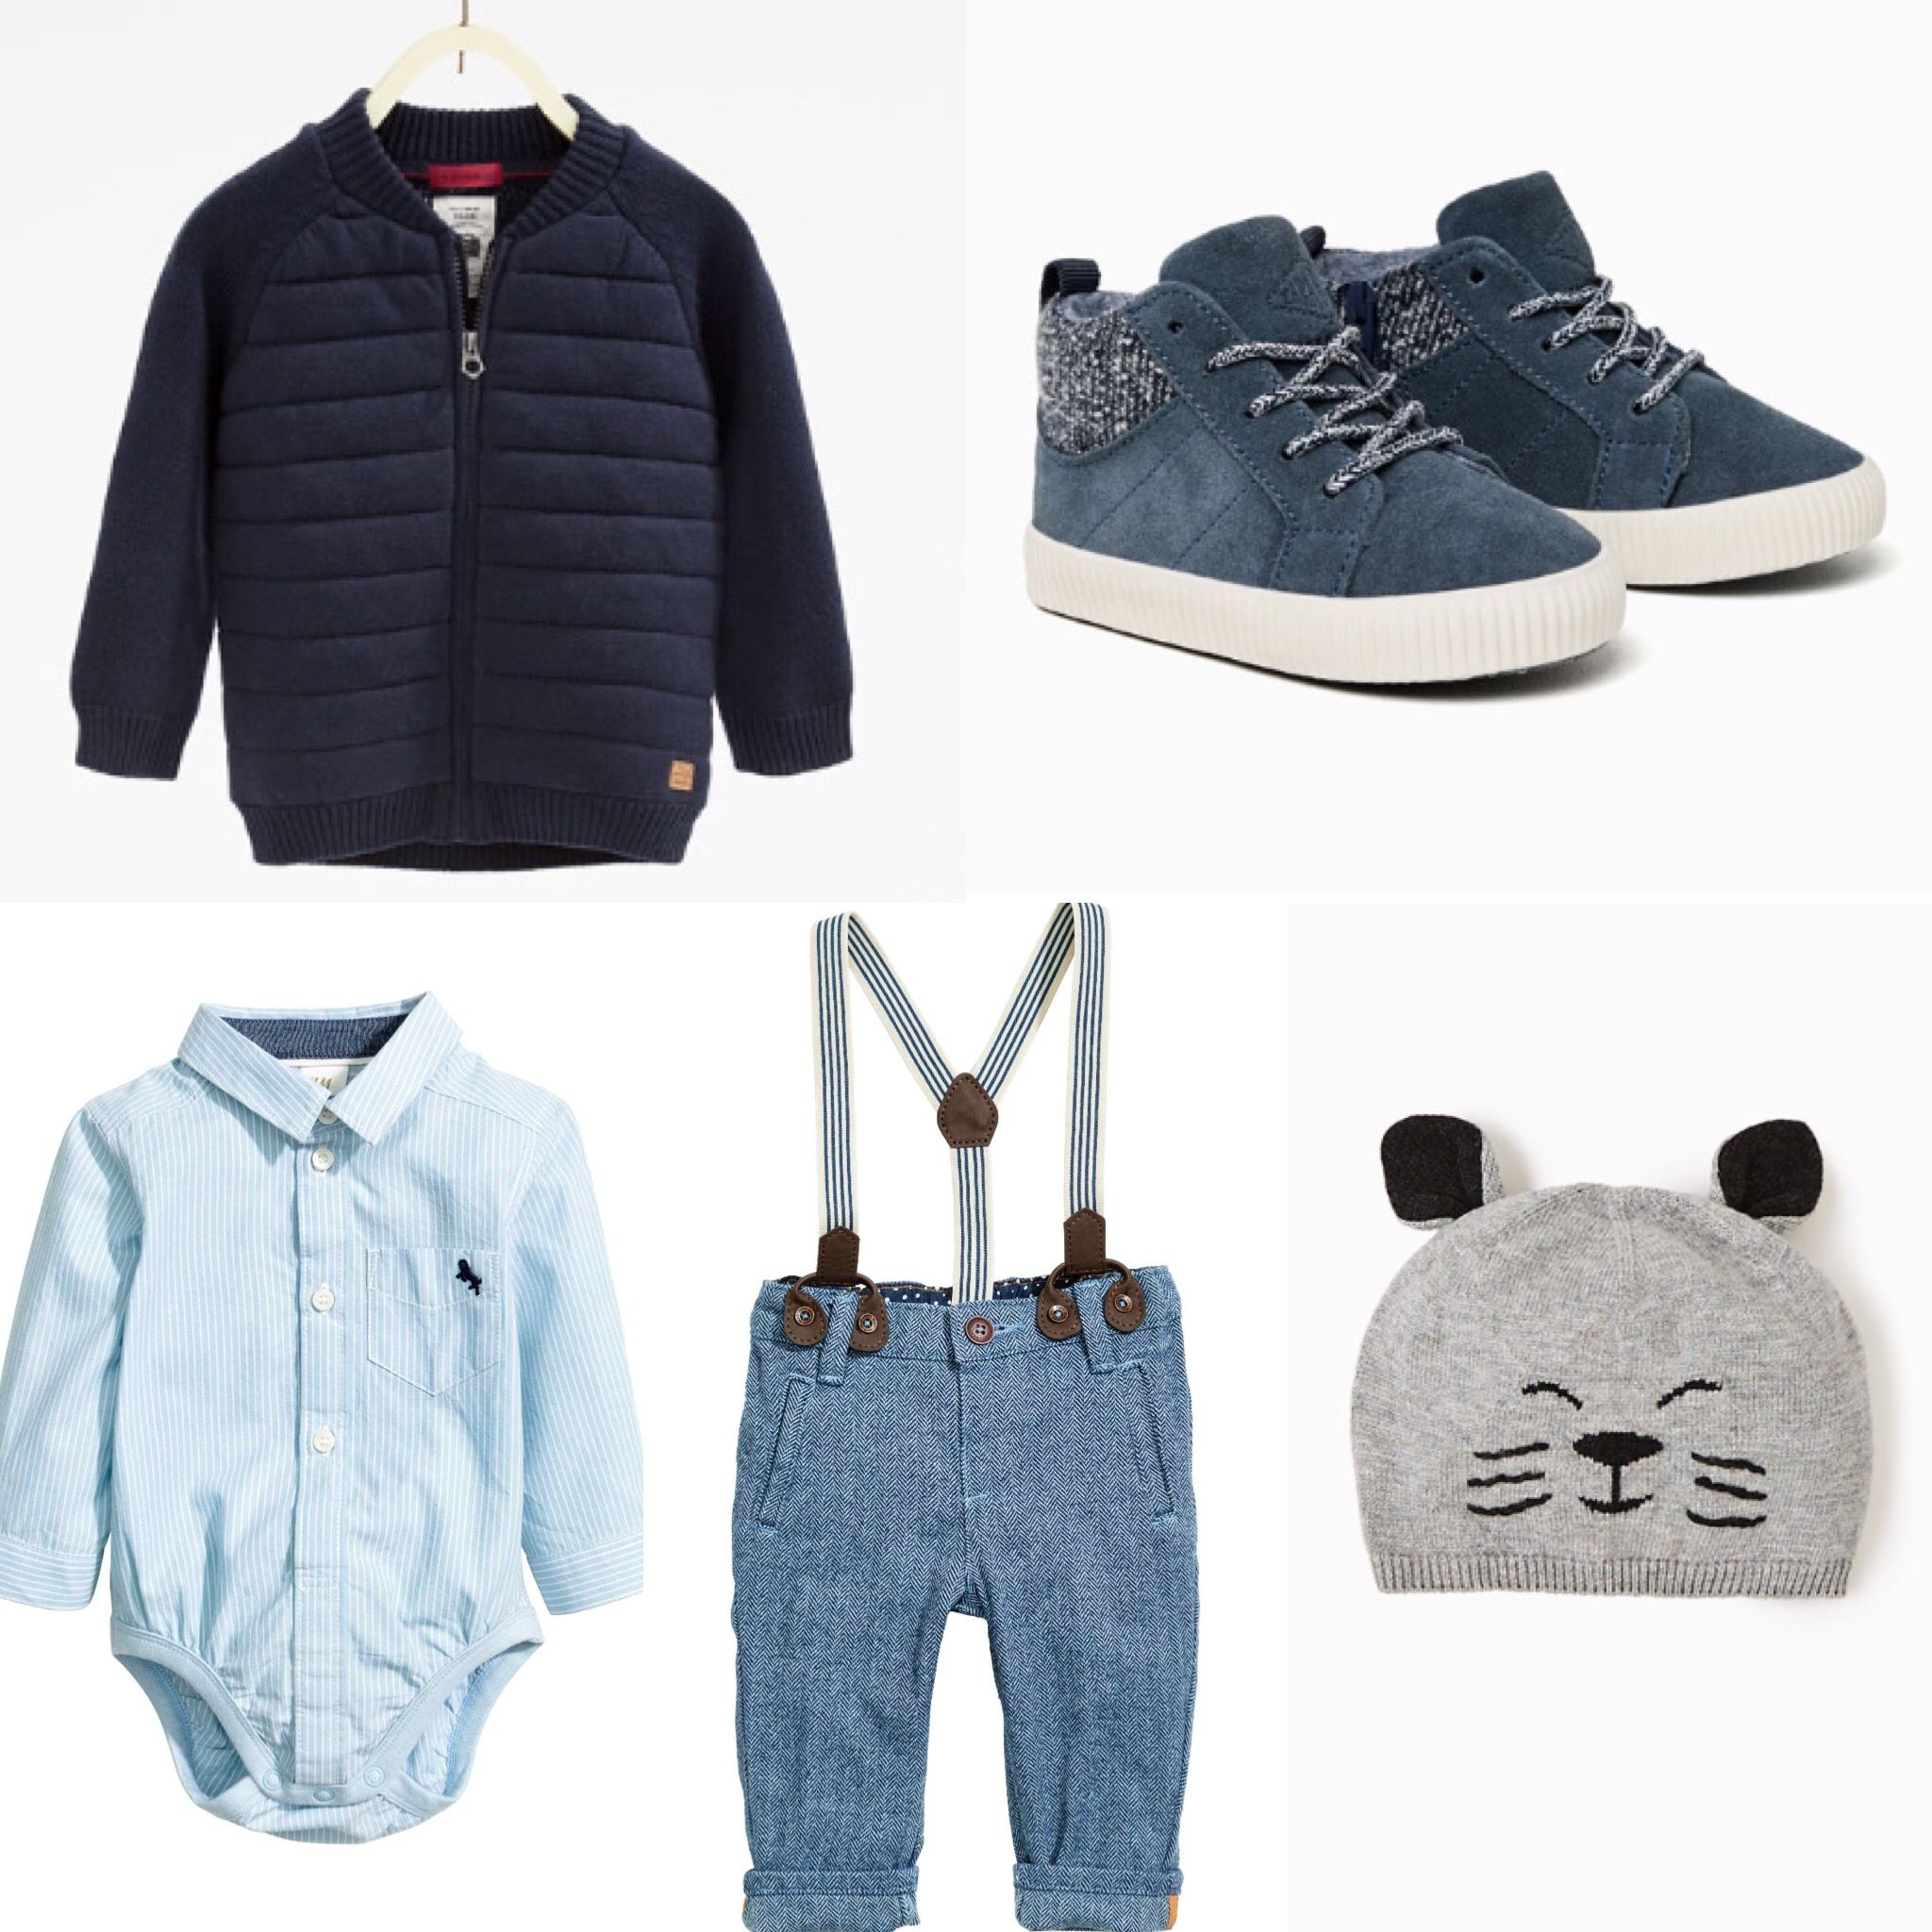 d544e323c Baby boy outfit idea. H&M trousers and body. Zara jacket, sneakers and hat.  2016 fall collection.